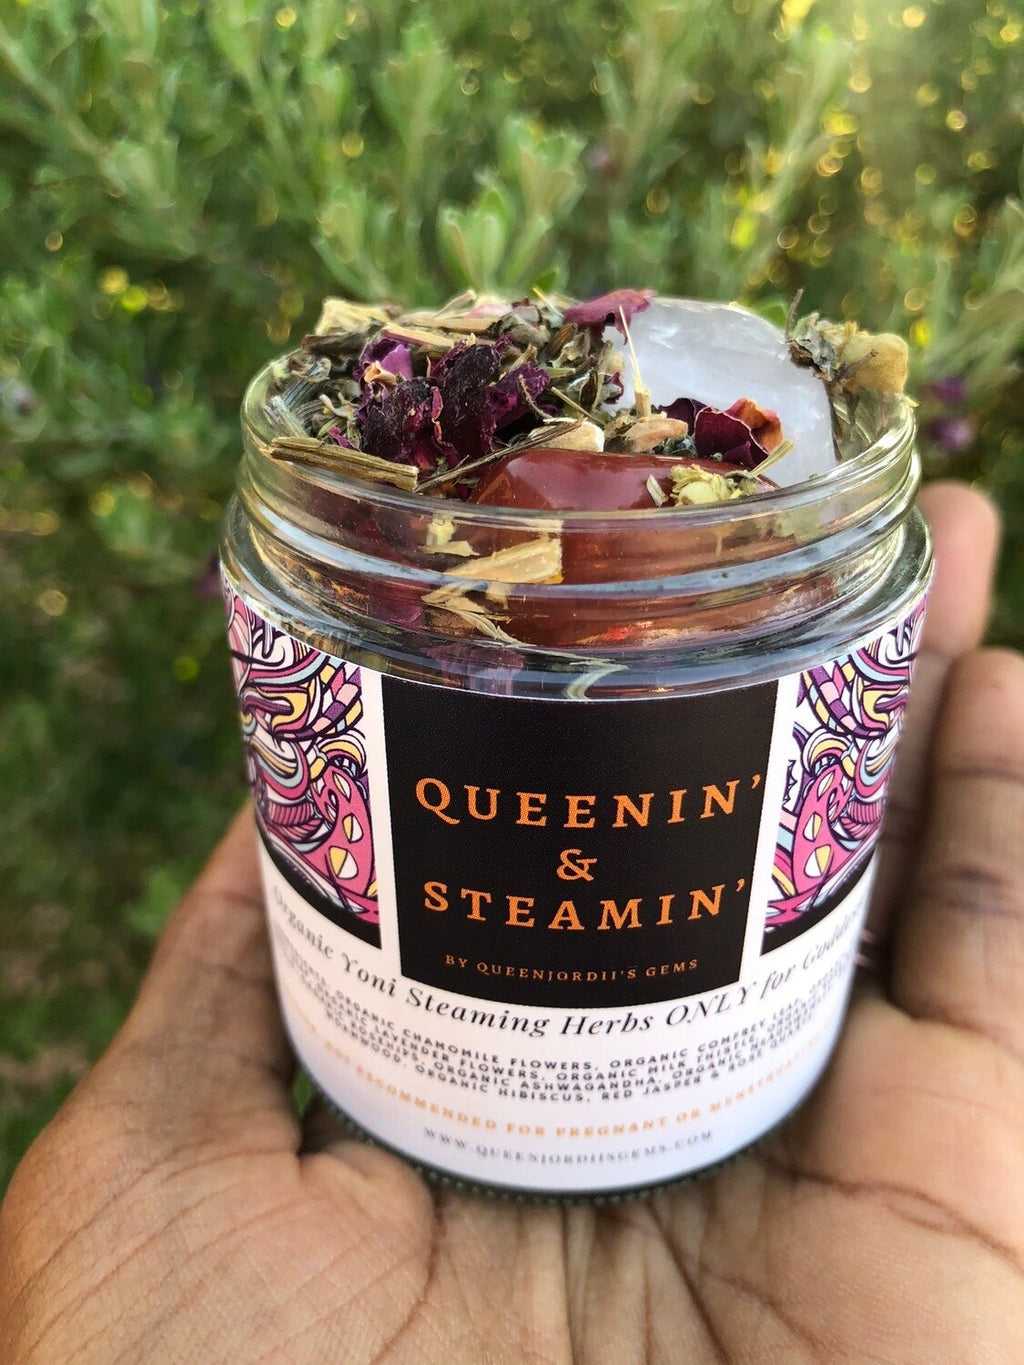 Queenin' & Steamin' Organic Yoni Steaming Herbs Only For Goddesses (4oz)